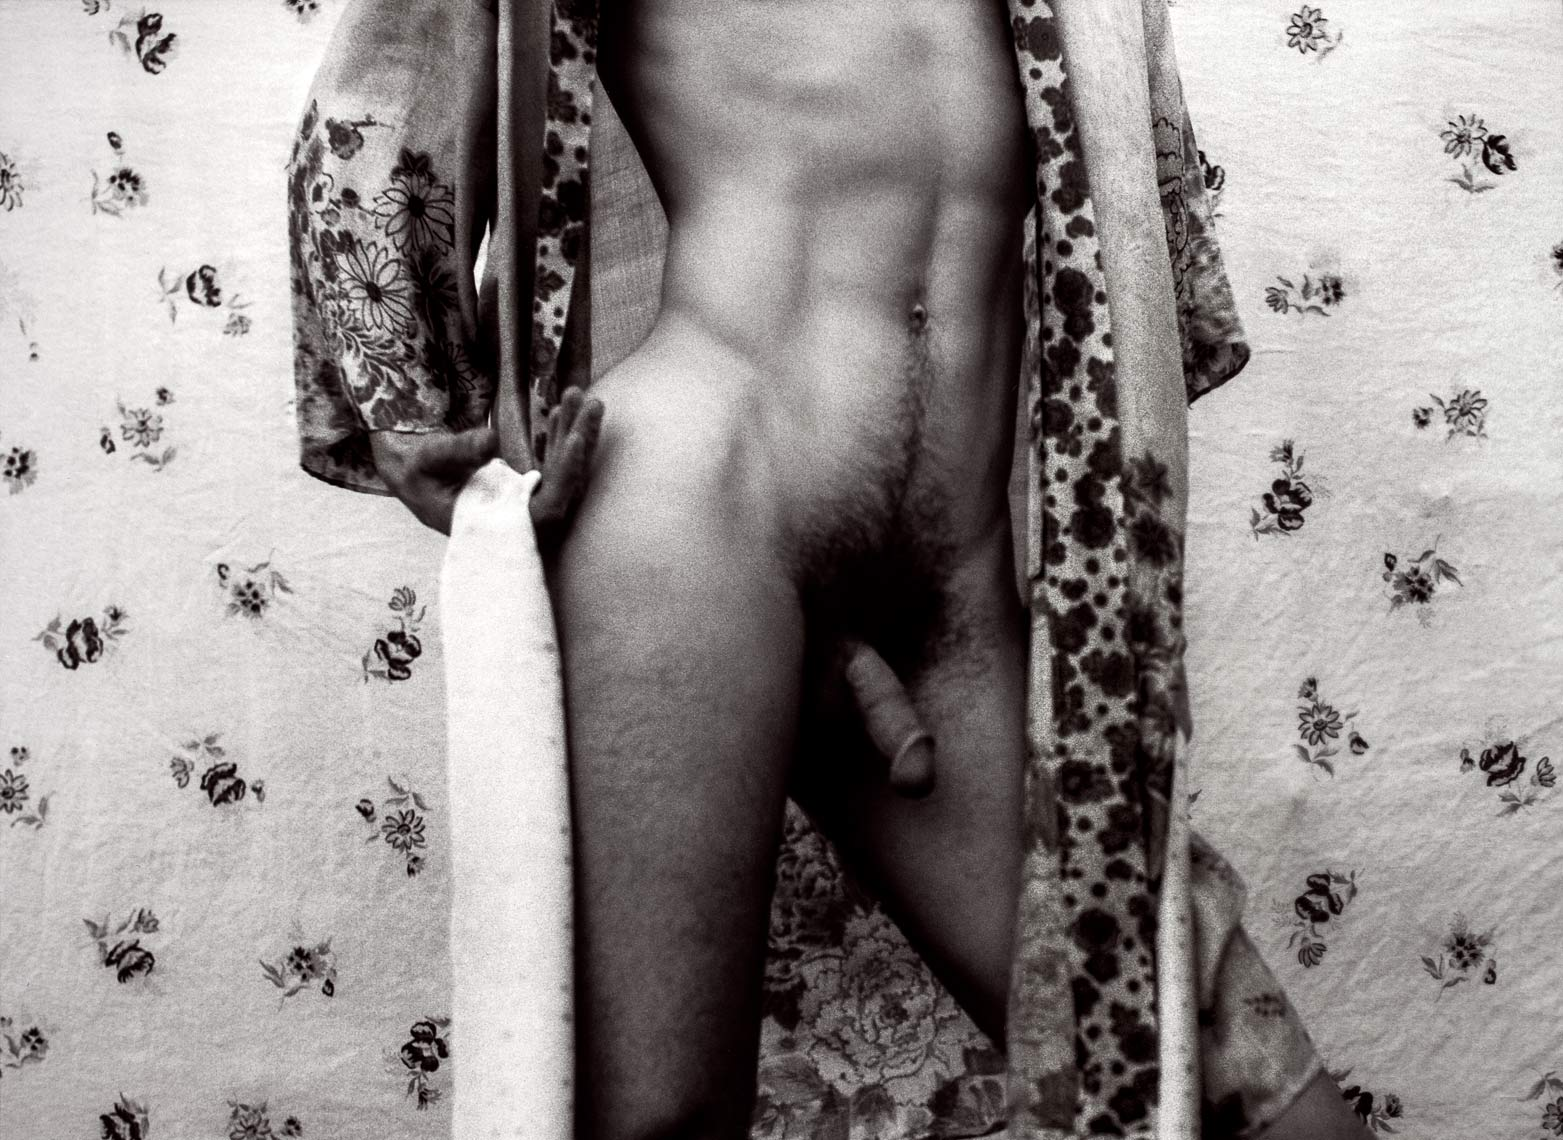 David Lebe; Silk Robe,vB, 1983,, male nude, black and white photograph